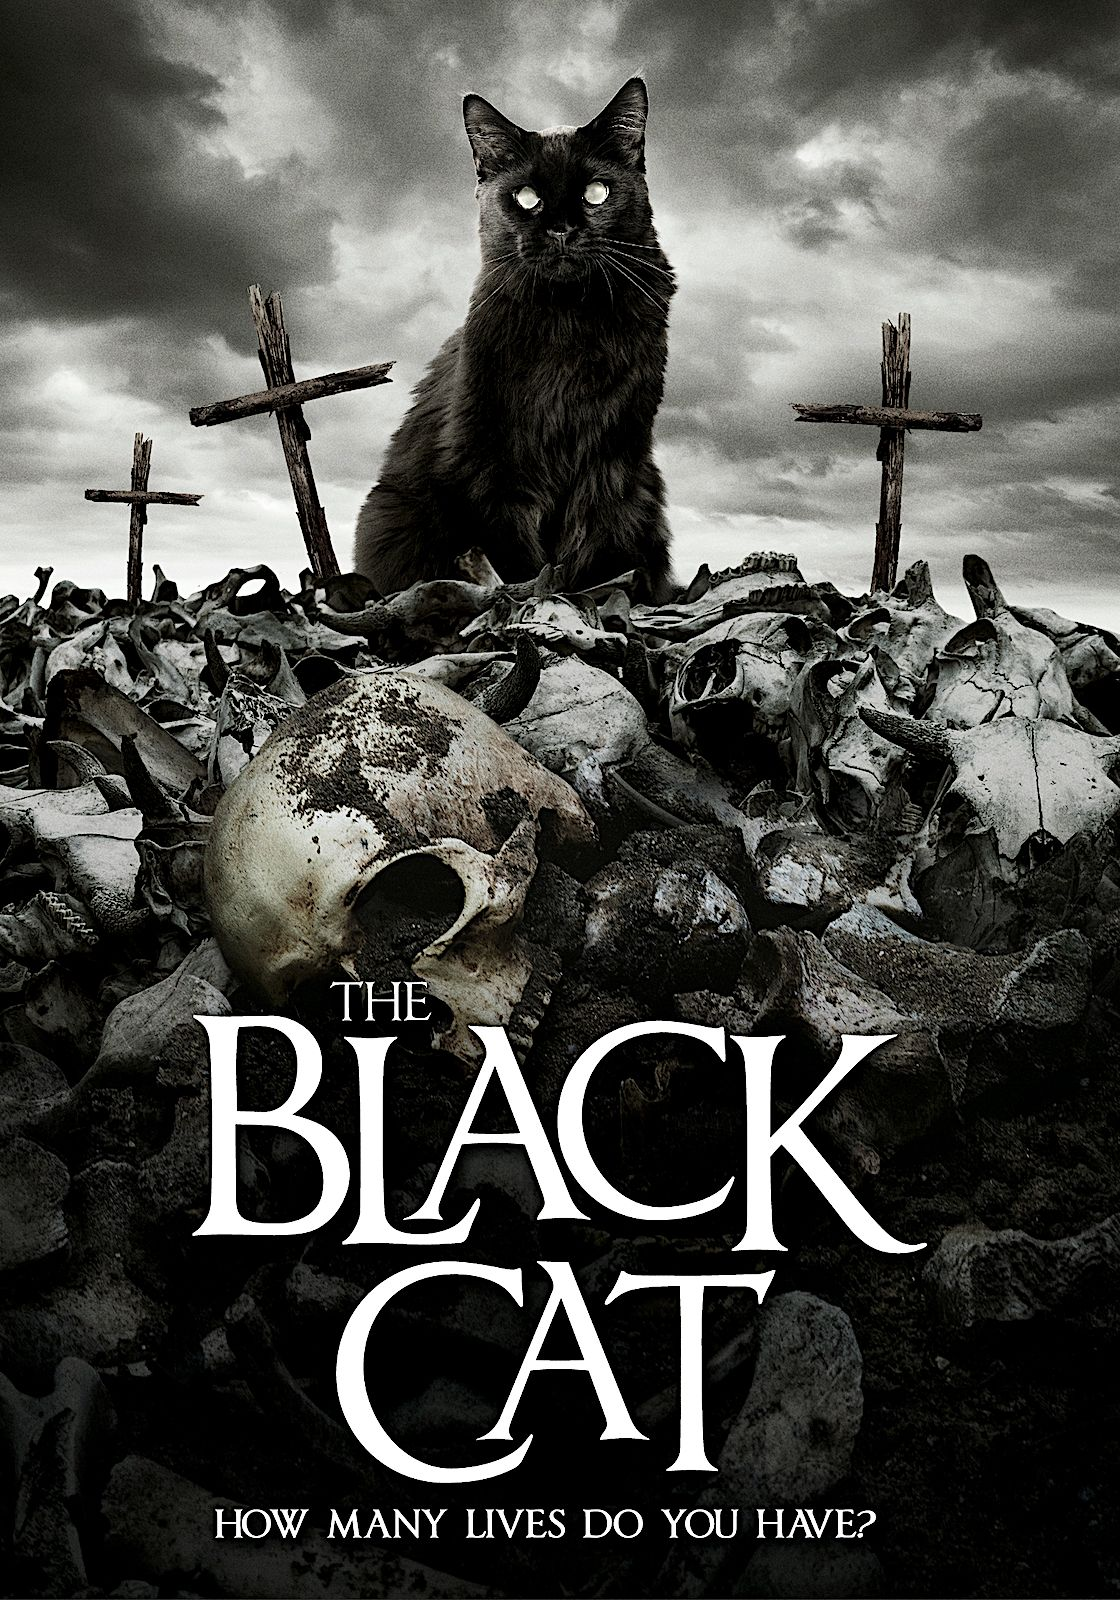 THE BLACK CAT DVD (WILD EYE RELEASING) in 2020 (With